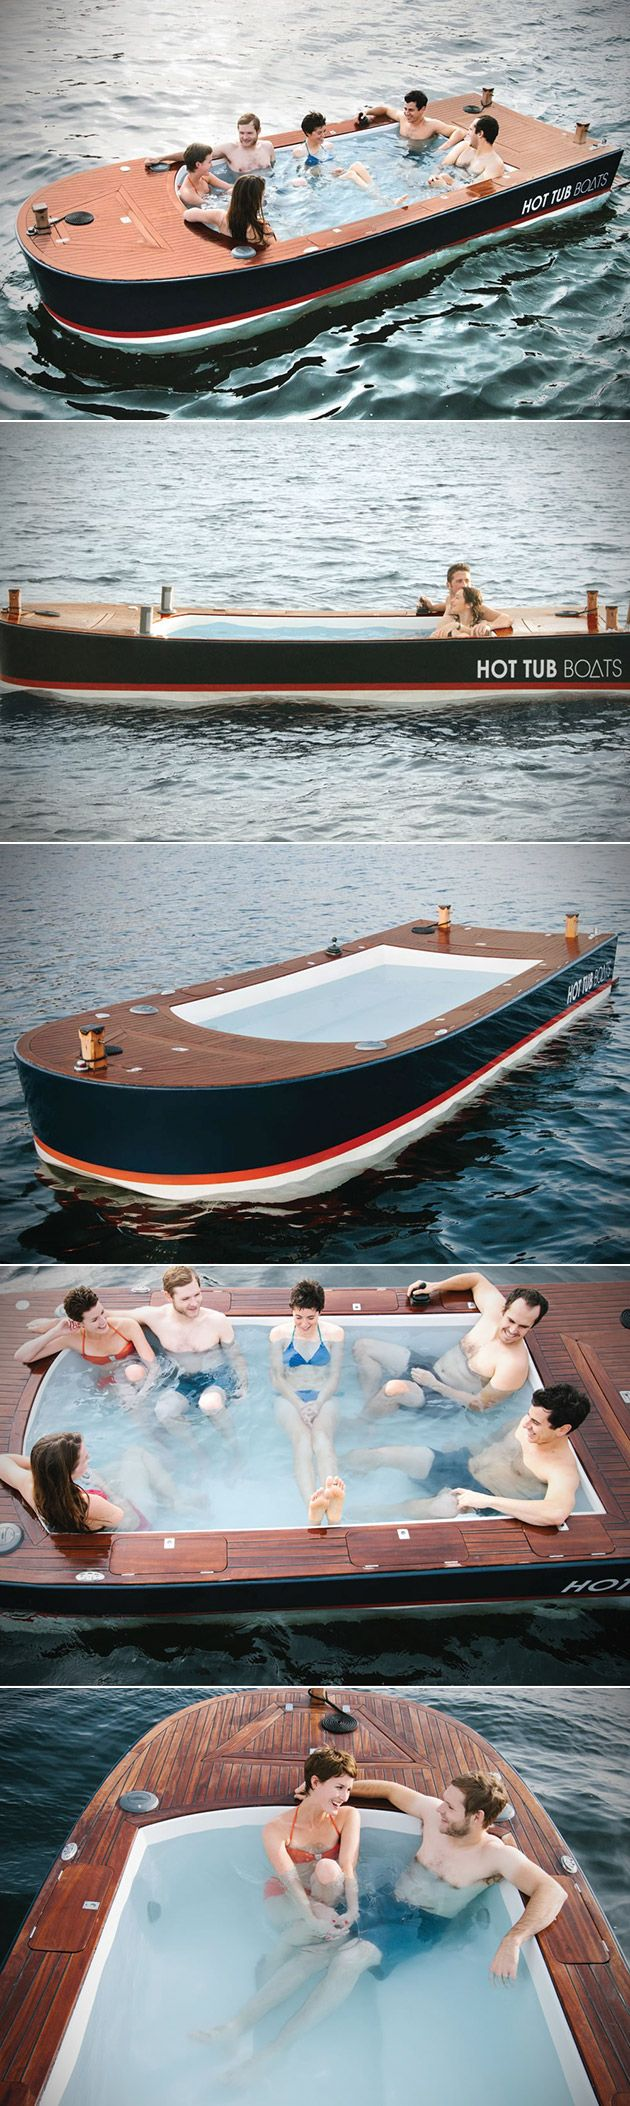 25 best ideas about deck boats on pinterest decorative painting projects garden picnic bench. Black Bedroom Furniture Sets. Home Design Ideas